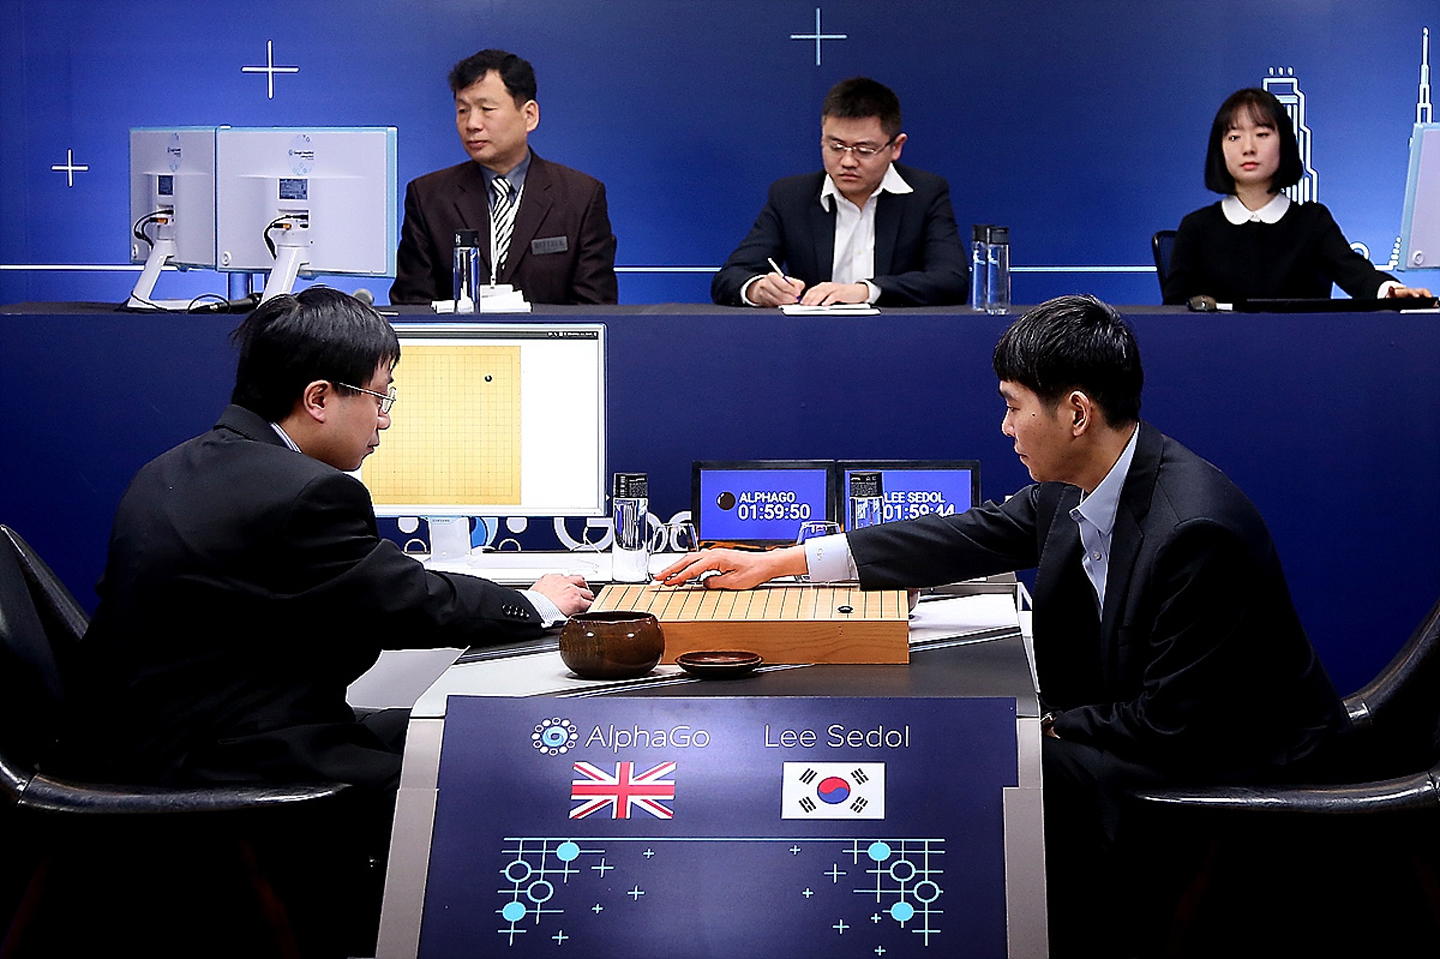 The world's top Go player Lee Sedol (on the right) playing against Google's artificial intelligence program AlphaGo during the Google DeepMind Challenge Match in Seoul, South Korea, 10 March 2016. Photo: © Handout / Getty Images